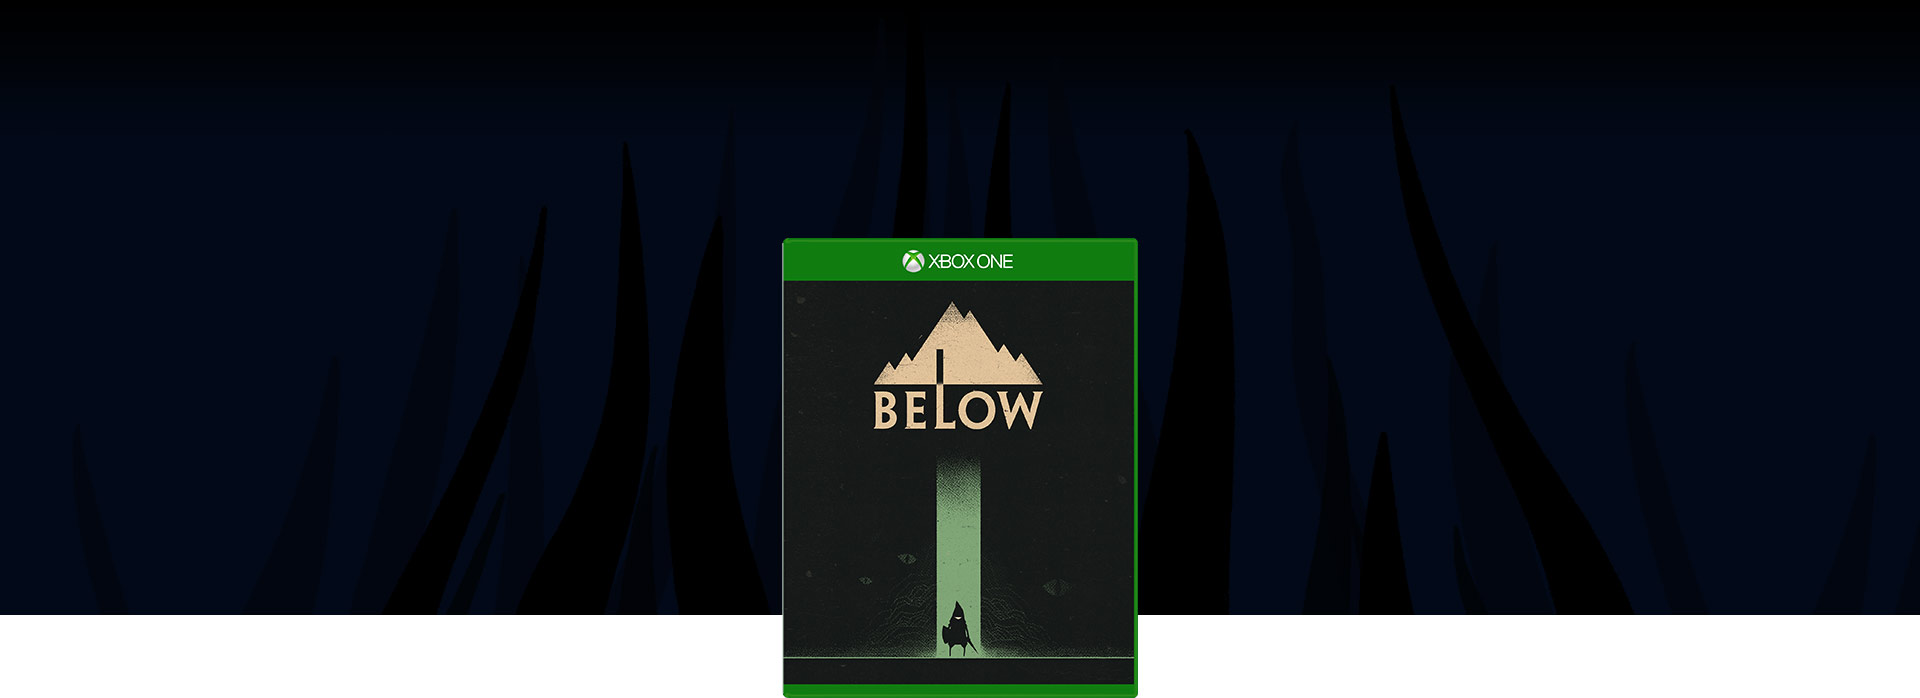 Tentakler med BELOW-coverbillede